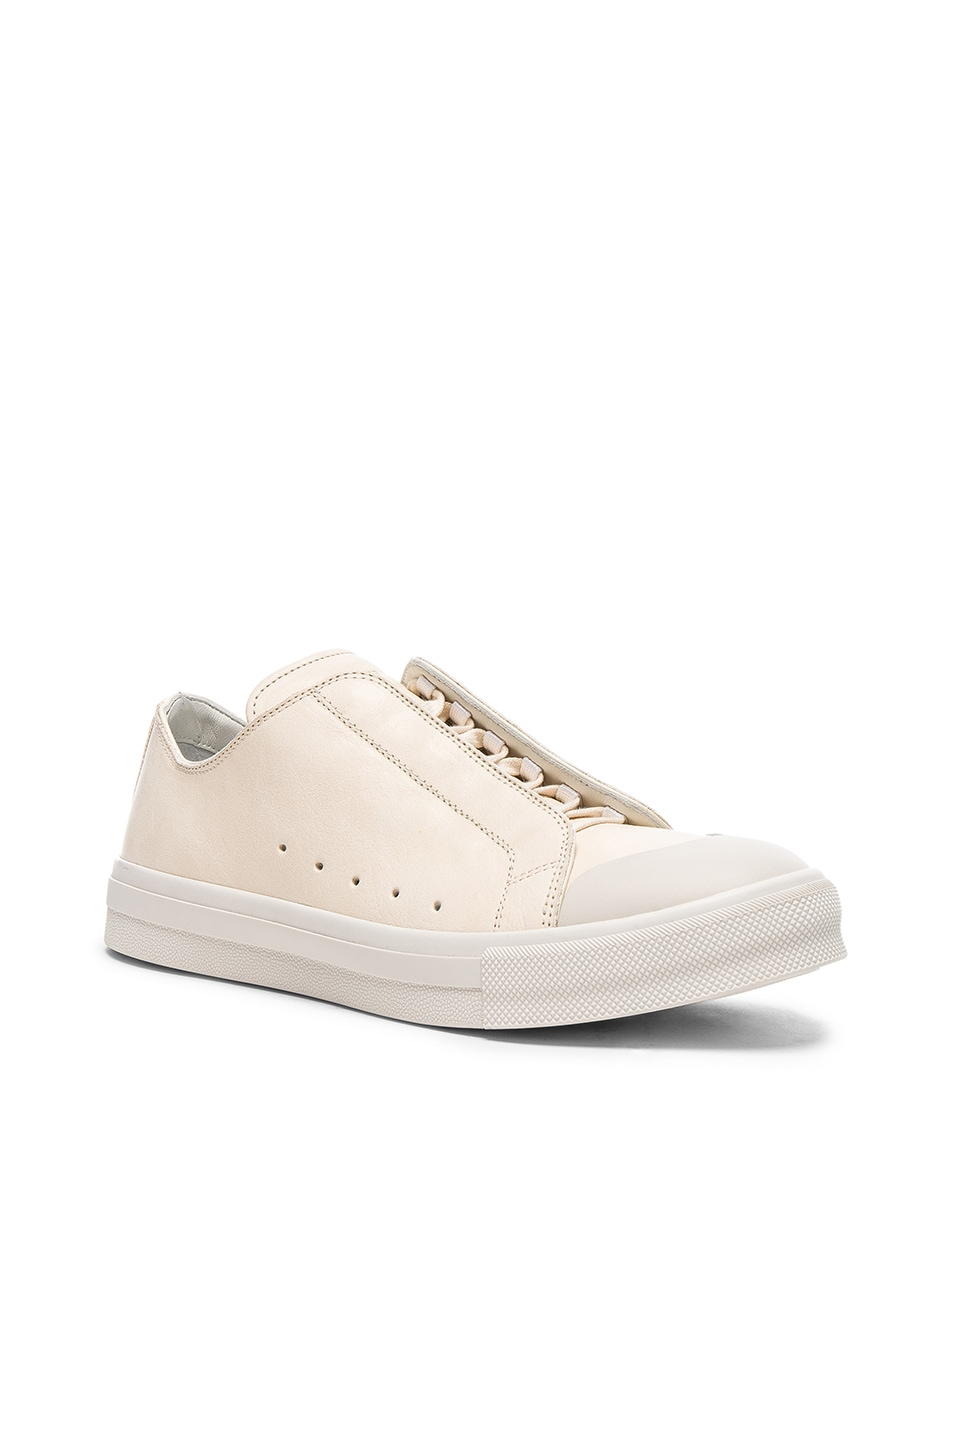 Image 1 of Alexander McQueen Low Top Sneakers in Ivory & White